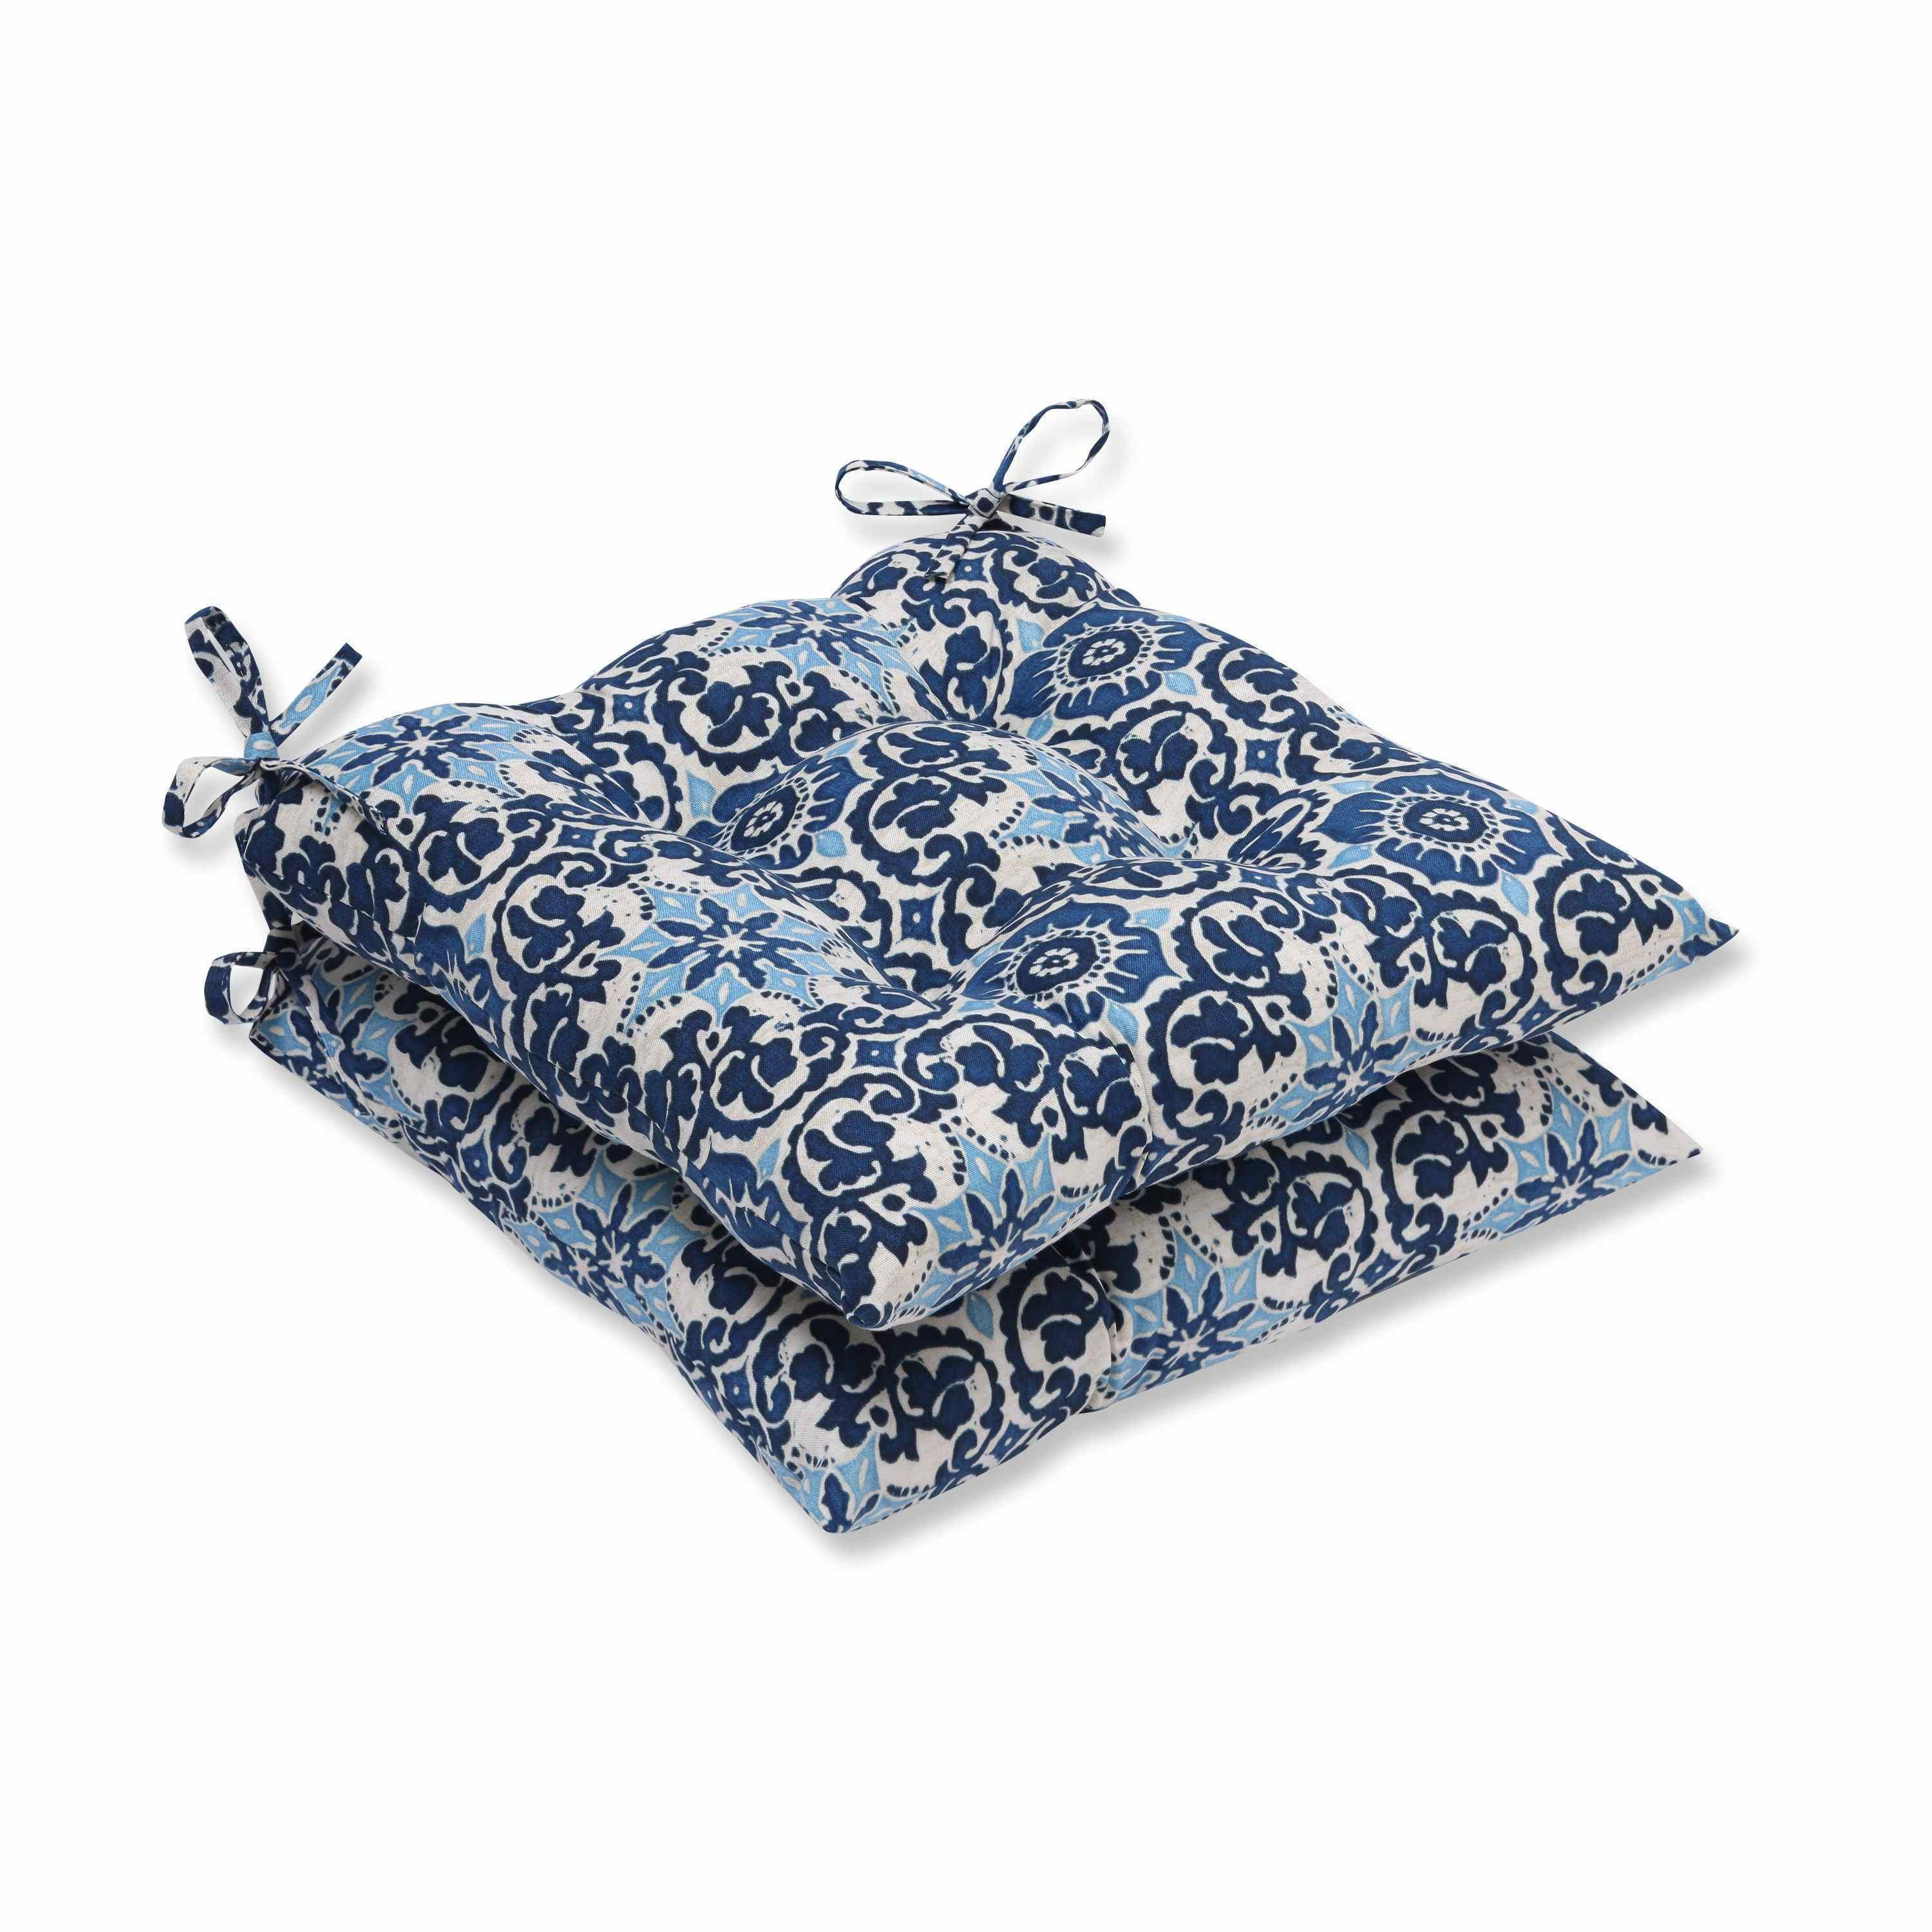 Pillow perfect outdoor indoor woodblock prism blue wrought iron